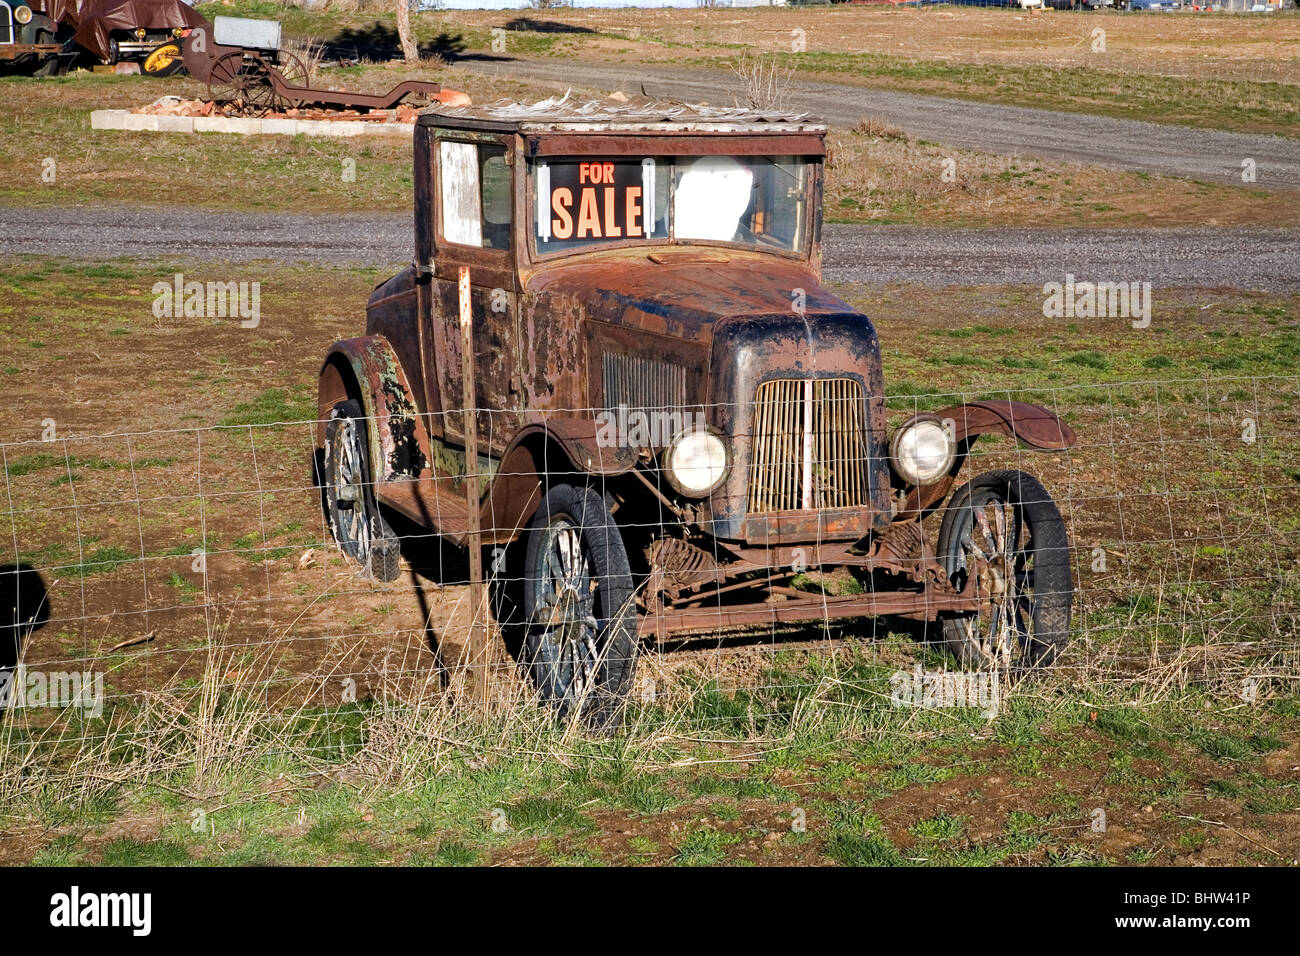 Classic Trucks Classic Cars Stock Photos & Classic Trucks Classic ...